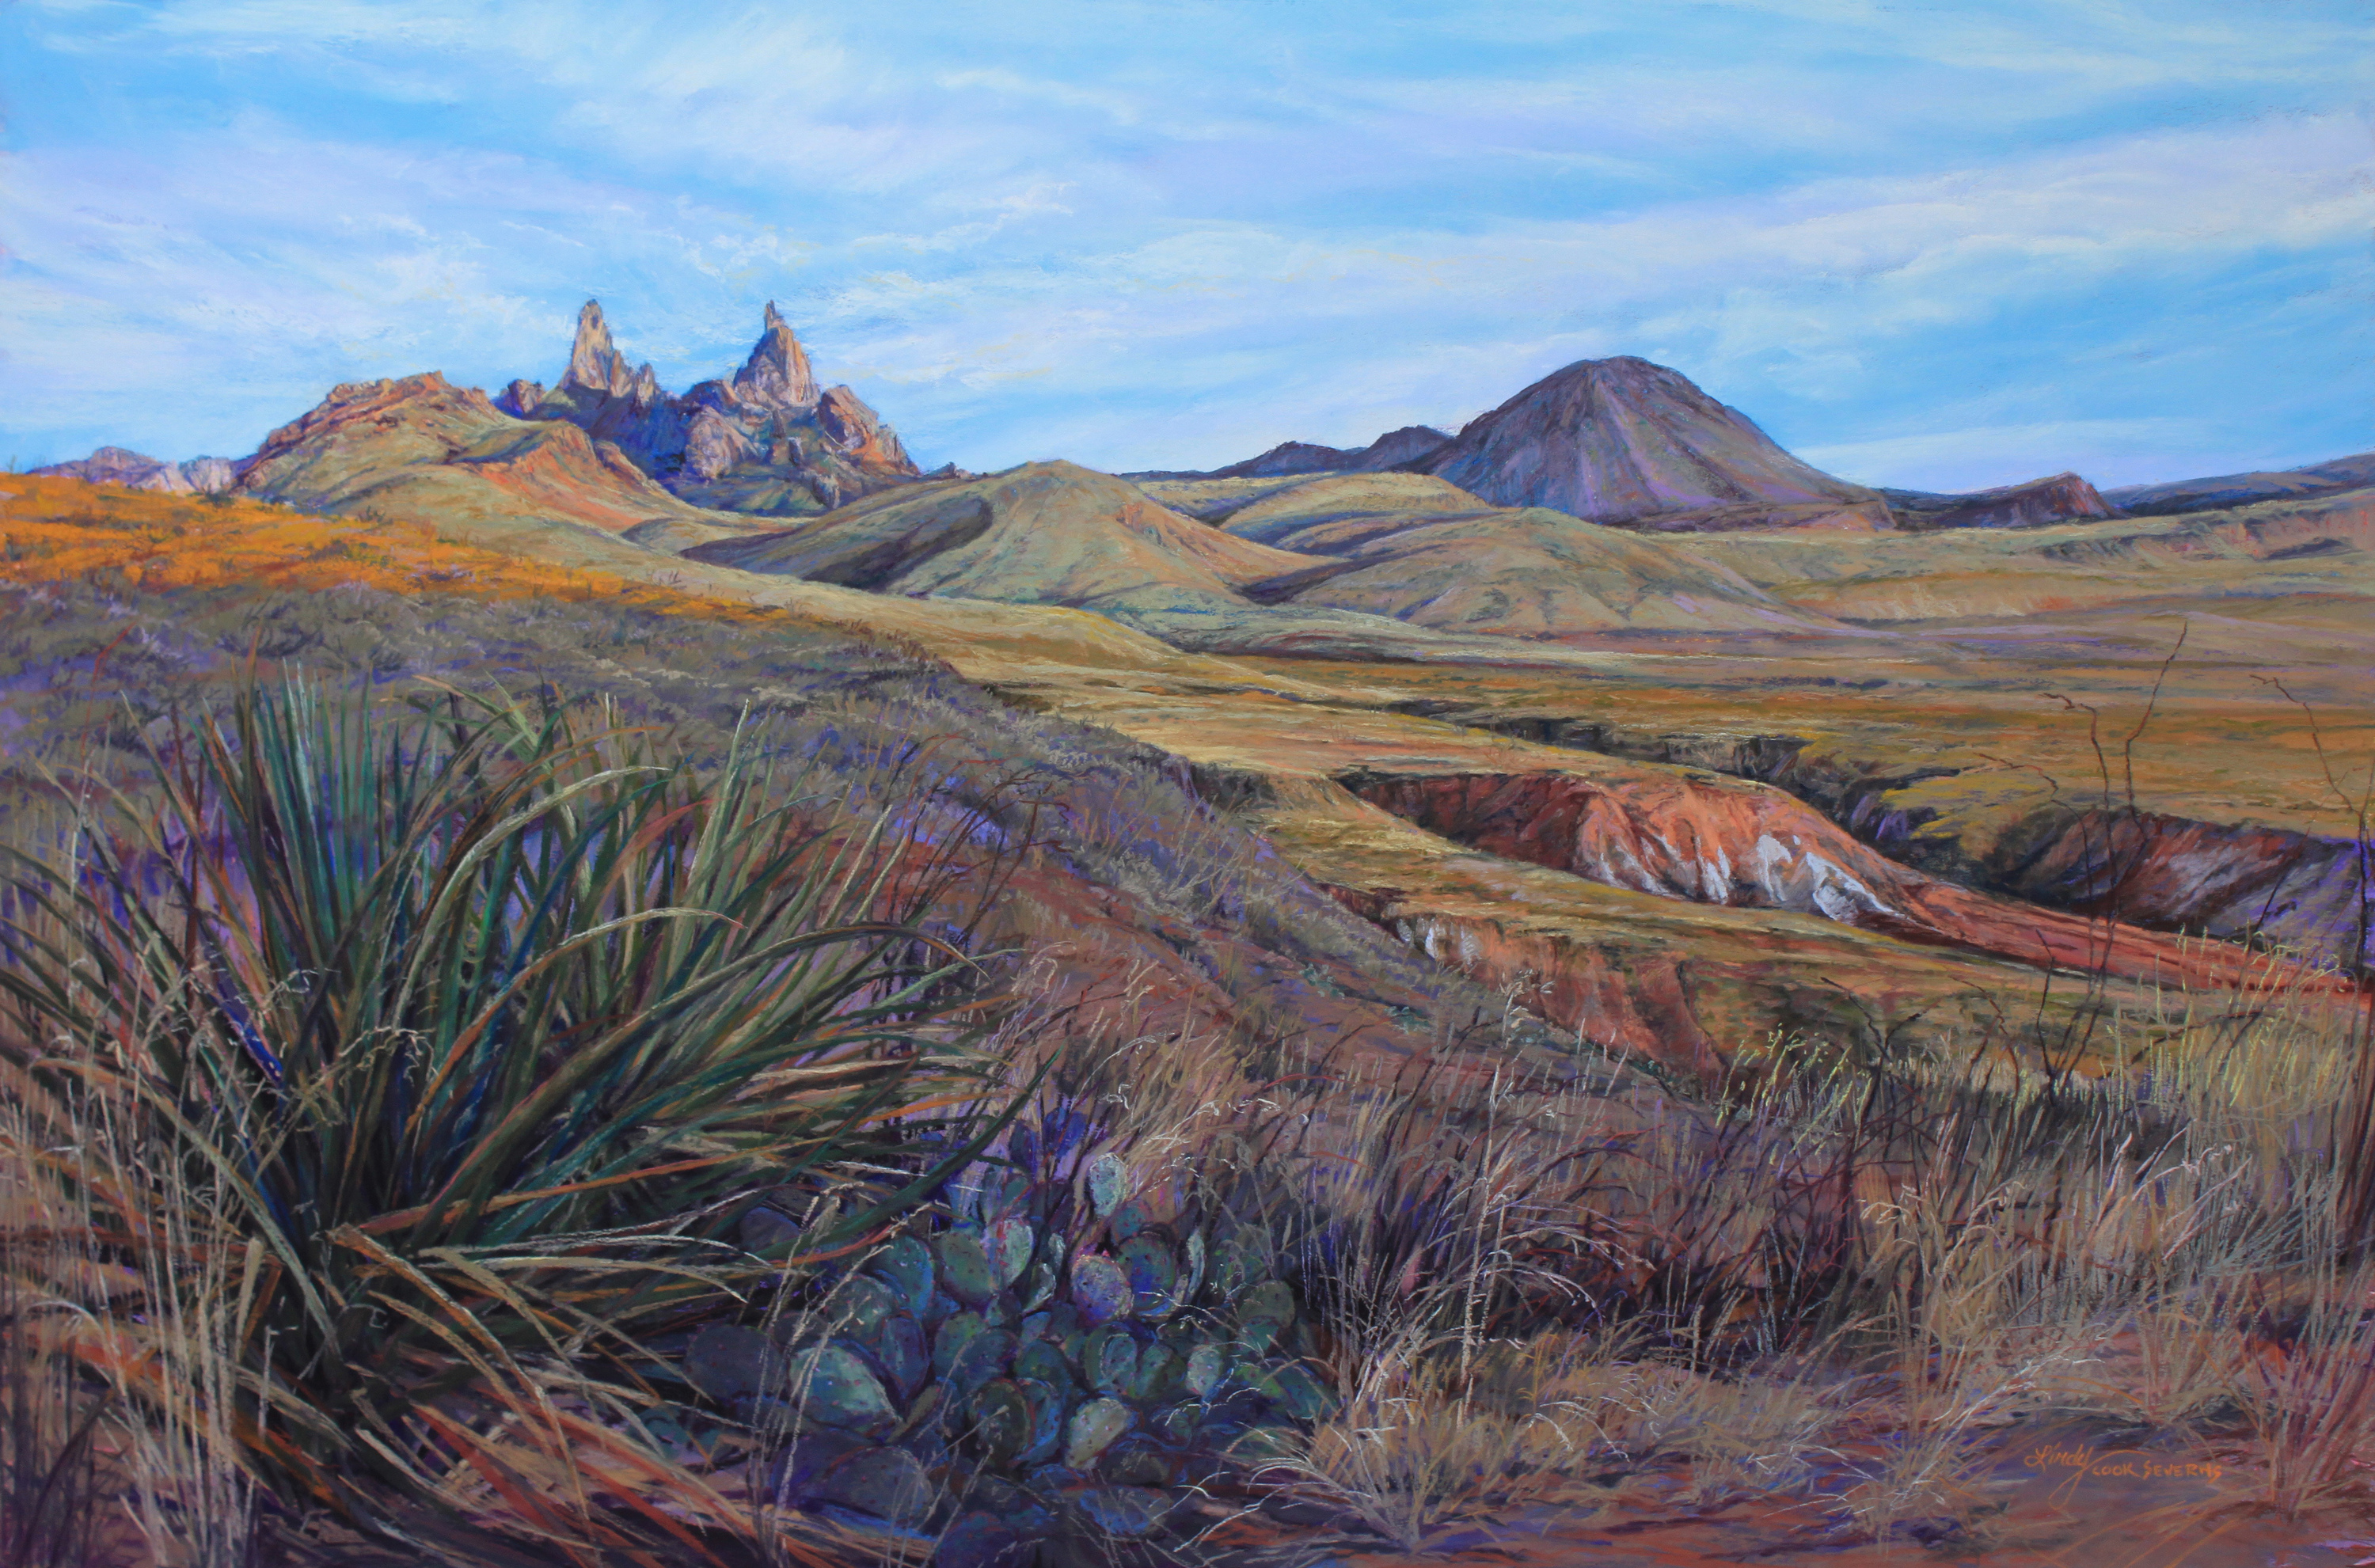 Serenity in the tx desert 24x36p 10 lxulxt